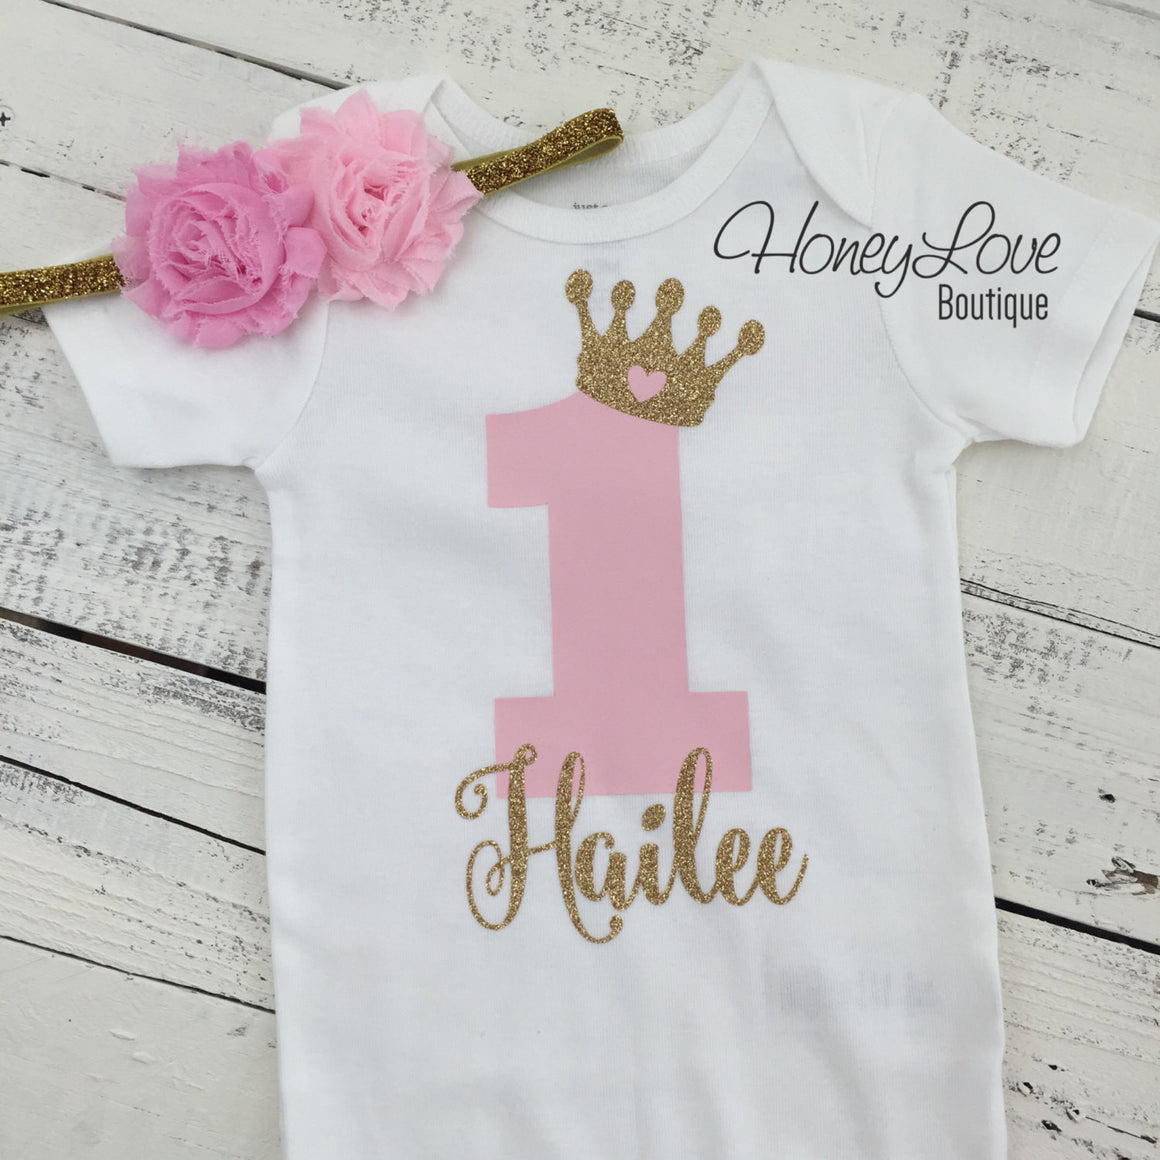 Personalized 1st Birthday outfit, one number 1 tiara crown princess gold glitter shirt bodysuit, light pink tutu skirt, flower headband set - HoneyLoveBoutique